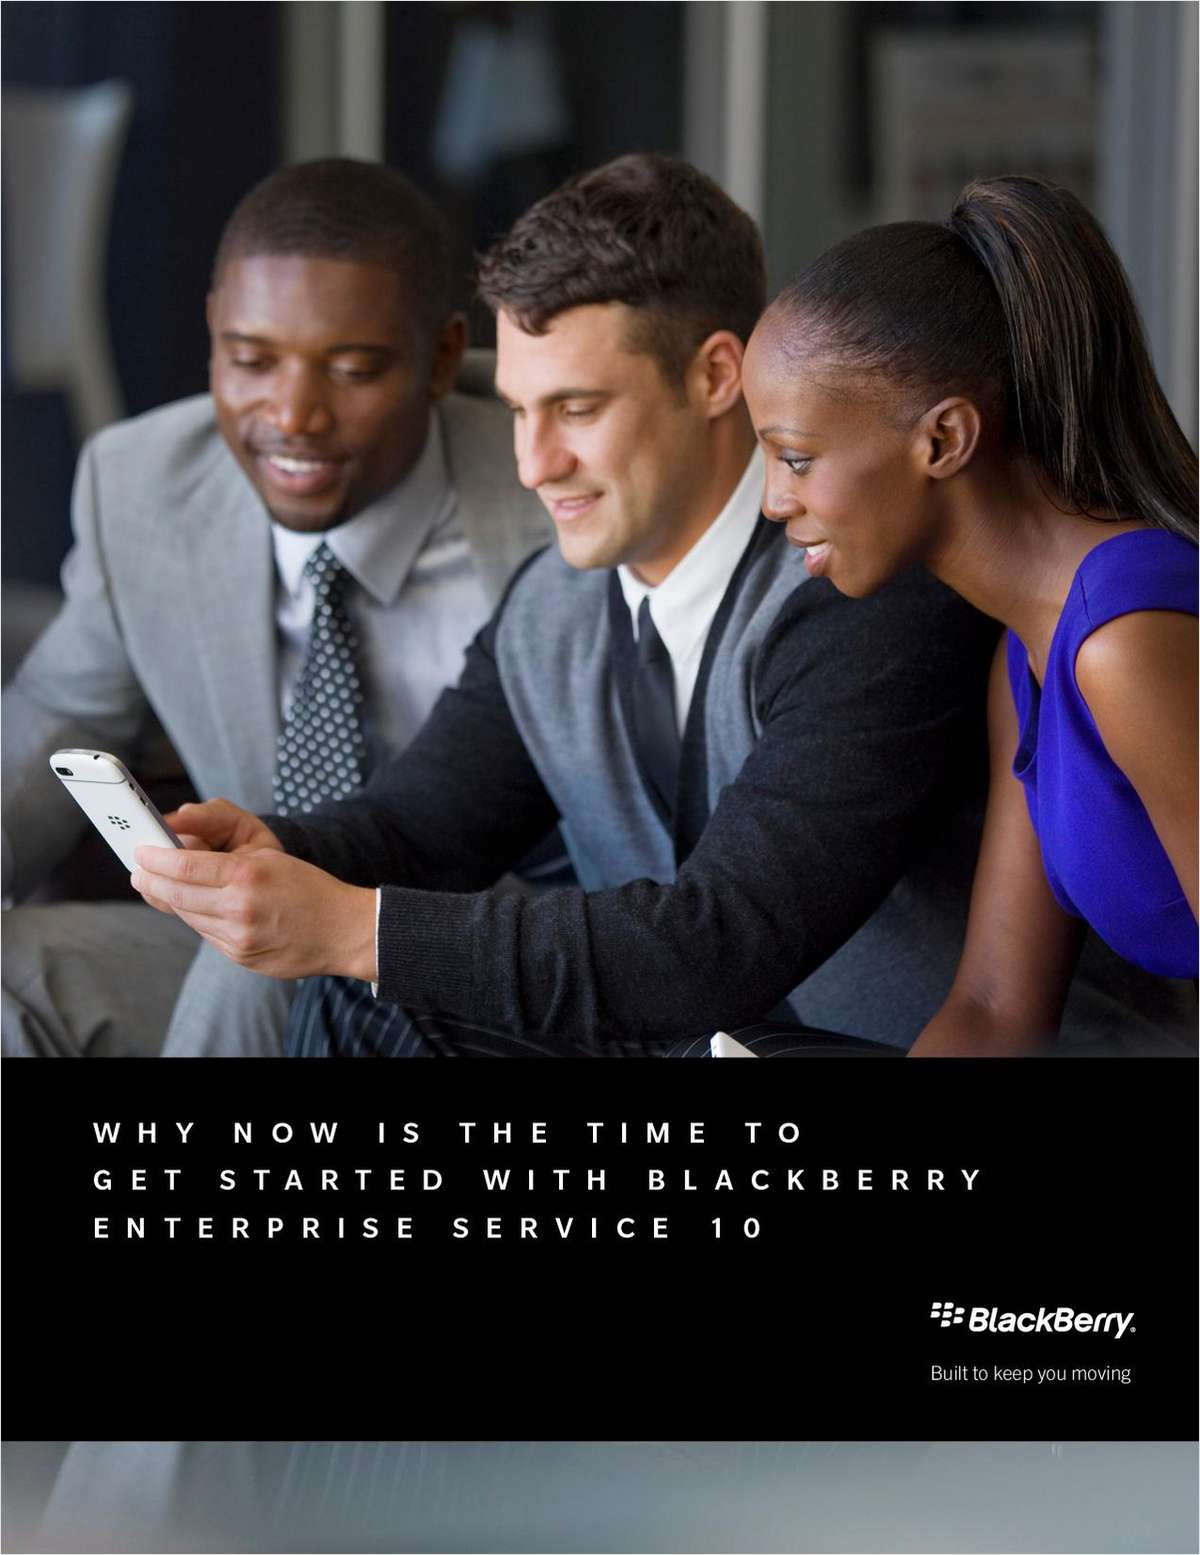 Why Now is the Time to Get Started with BlackBerry Enterprise Service 10